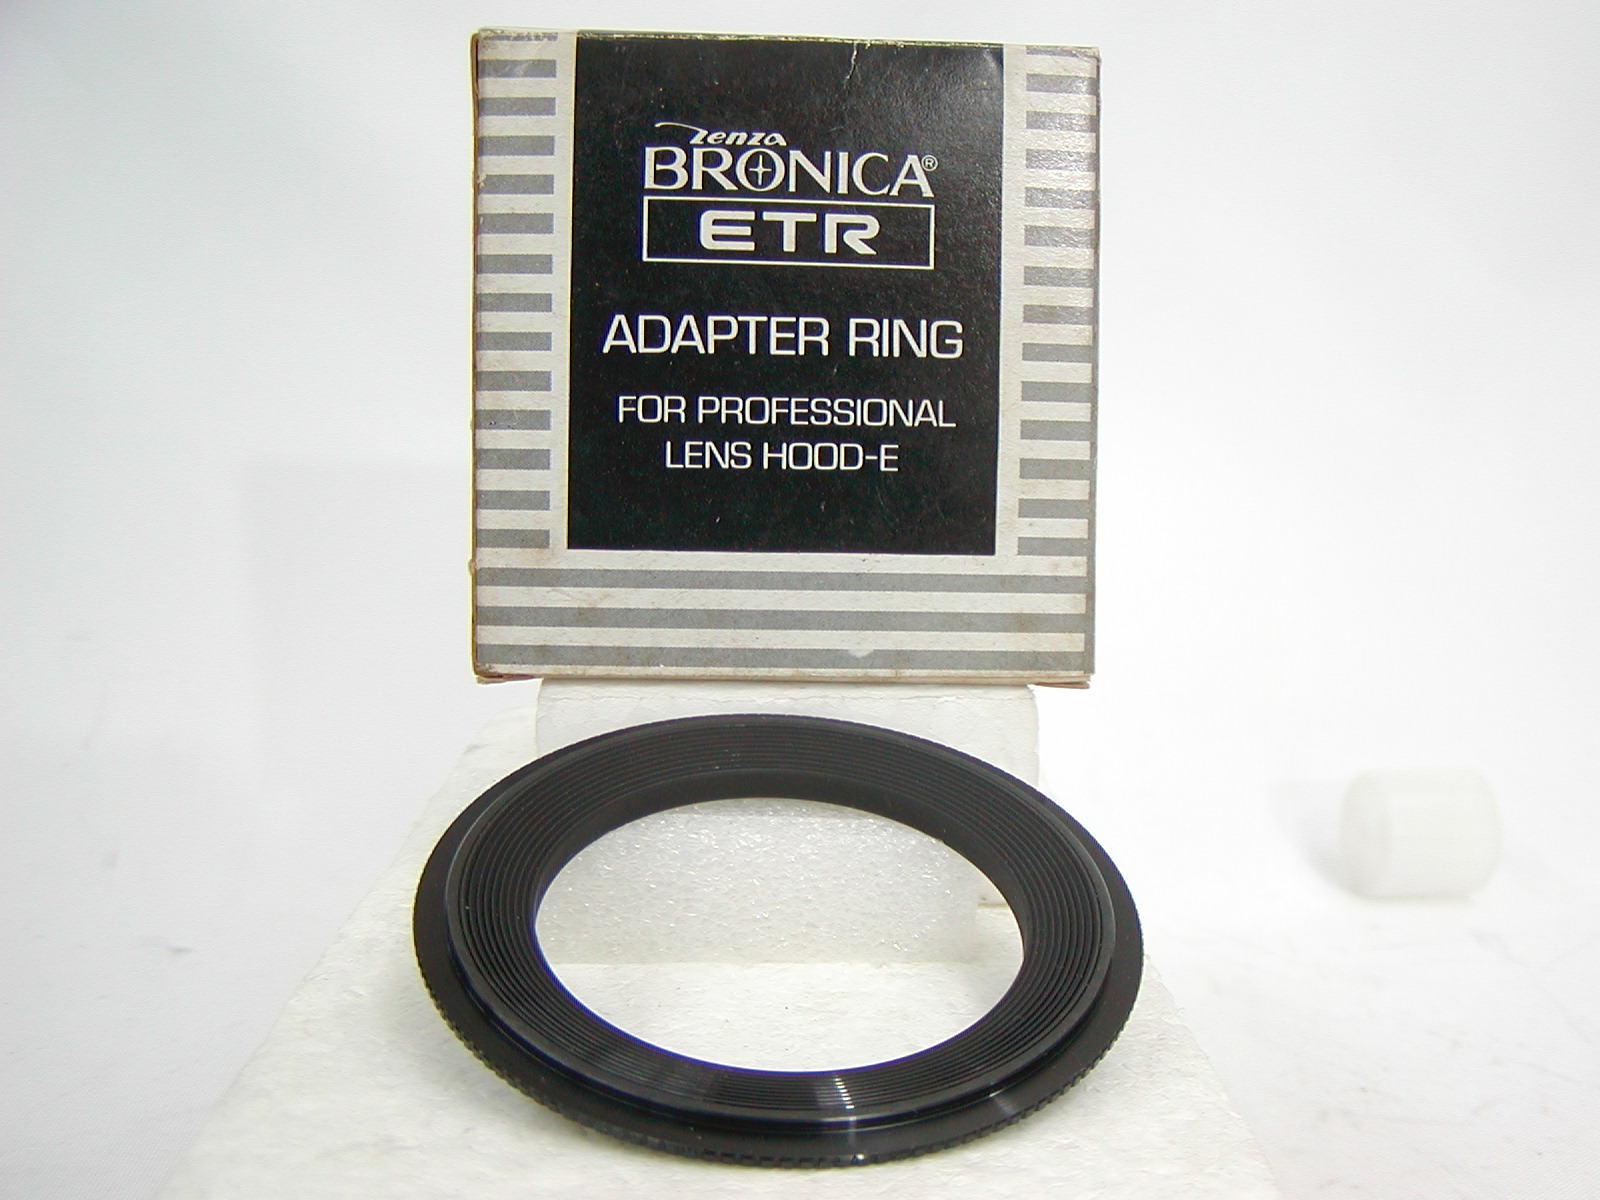 ZENZA BRONICA ETR 55MM ADAPTER RING FOR PROFESSIONAL LENS HOOD E ブロニカ